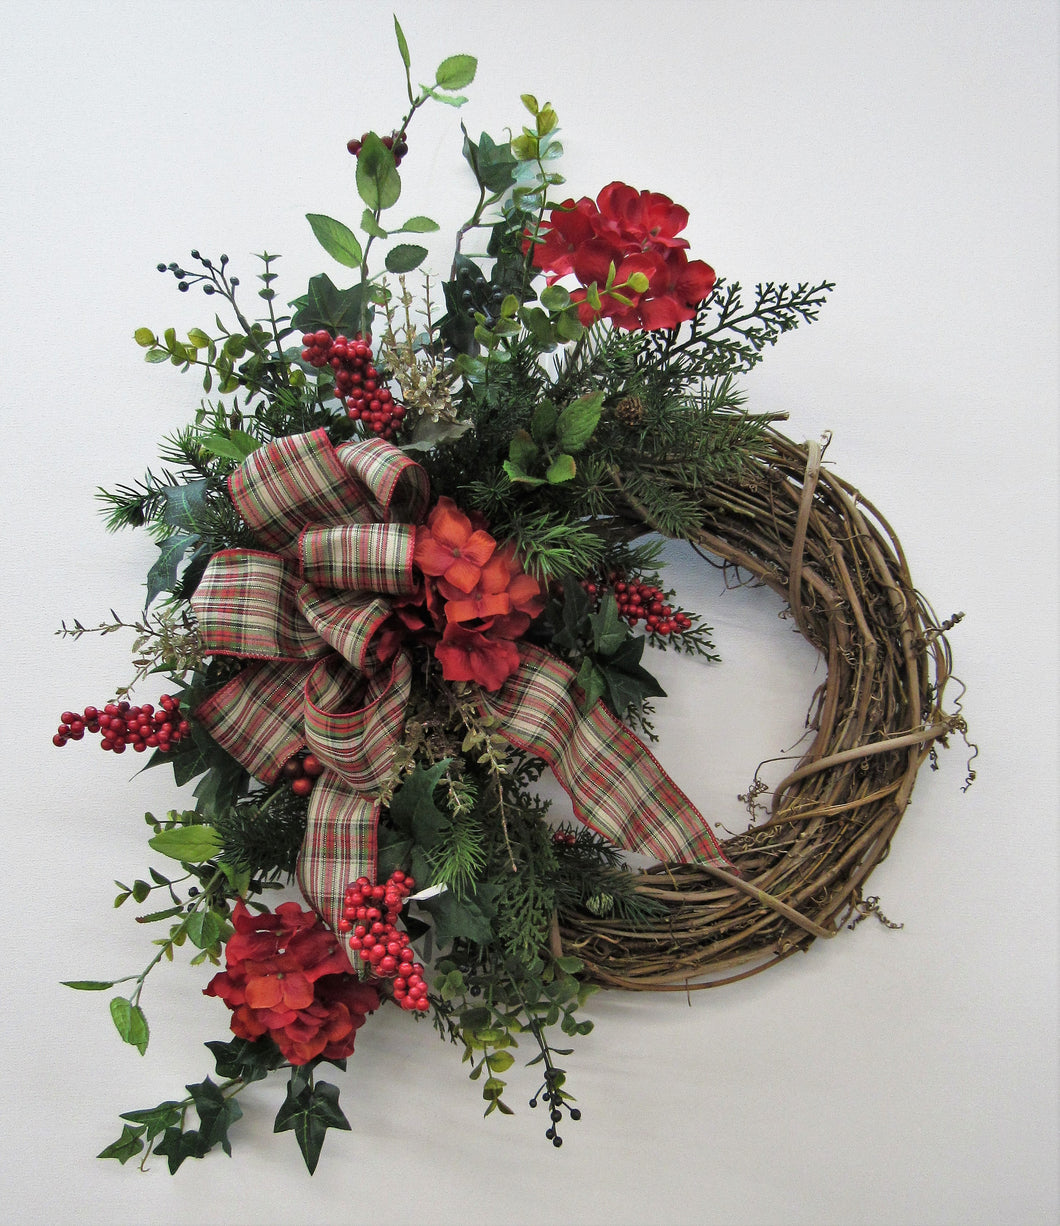 Red Hydrangea Silk Floral Crescent Transitional Winter Wreath/Trans18 - April's Garden Wreath